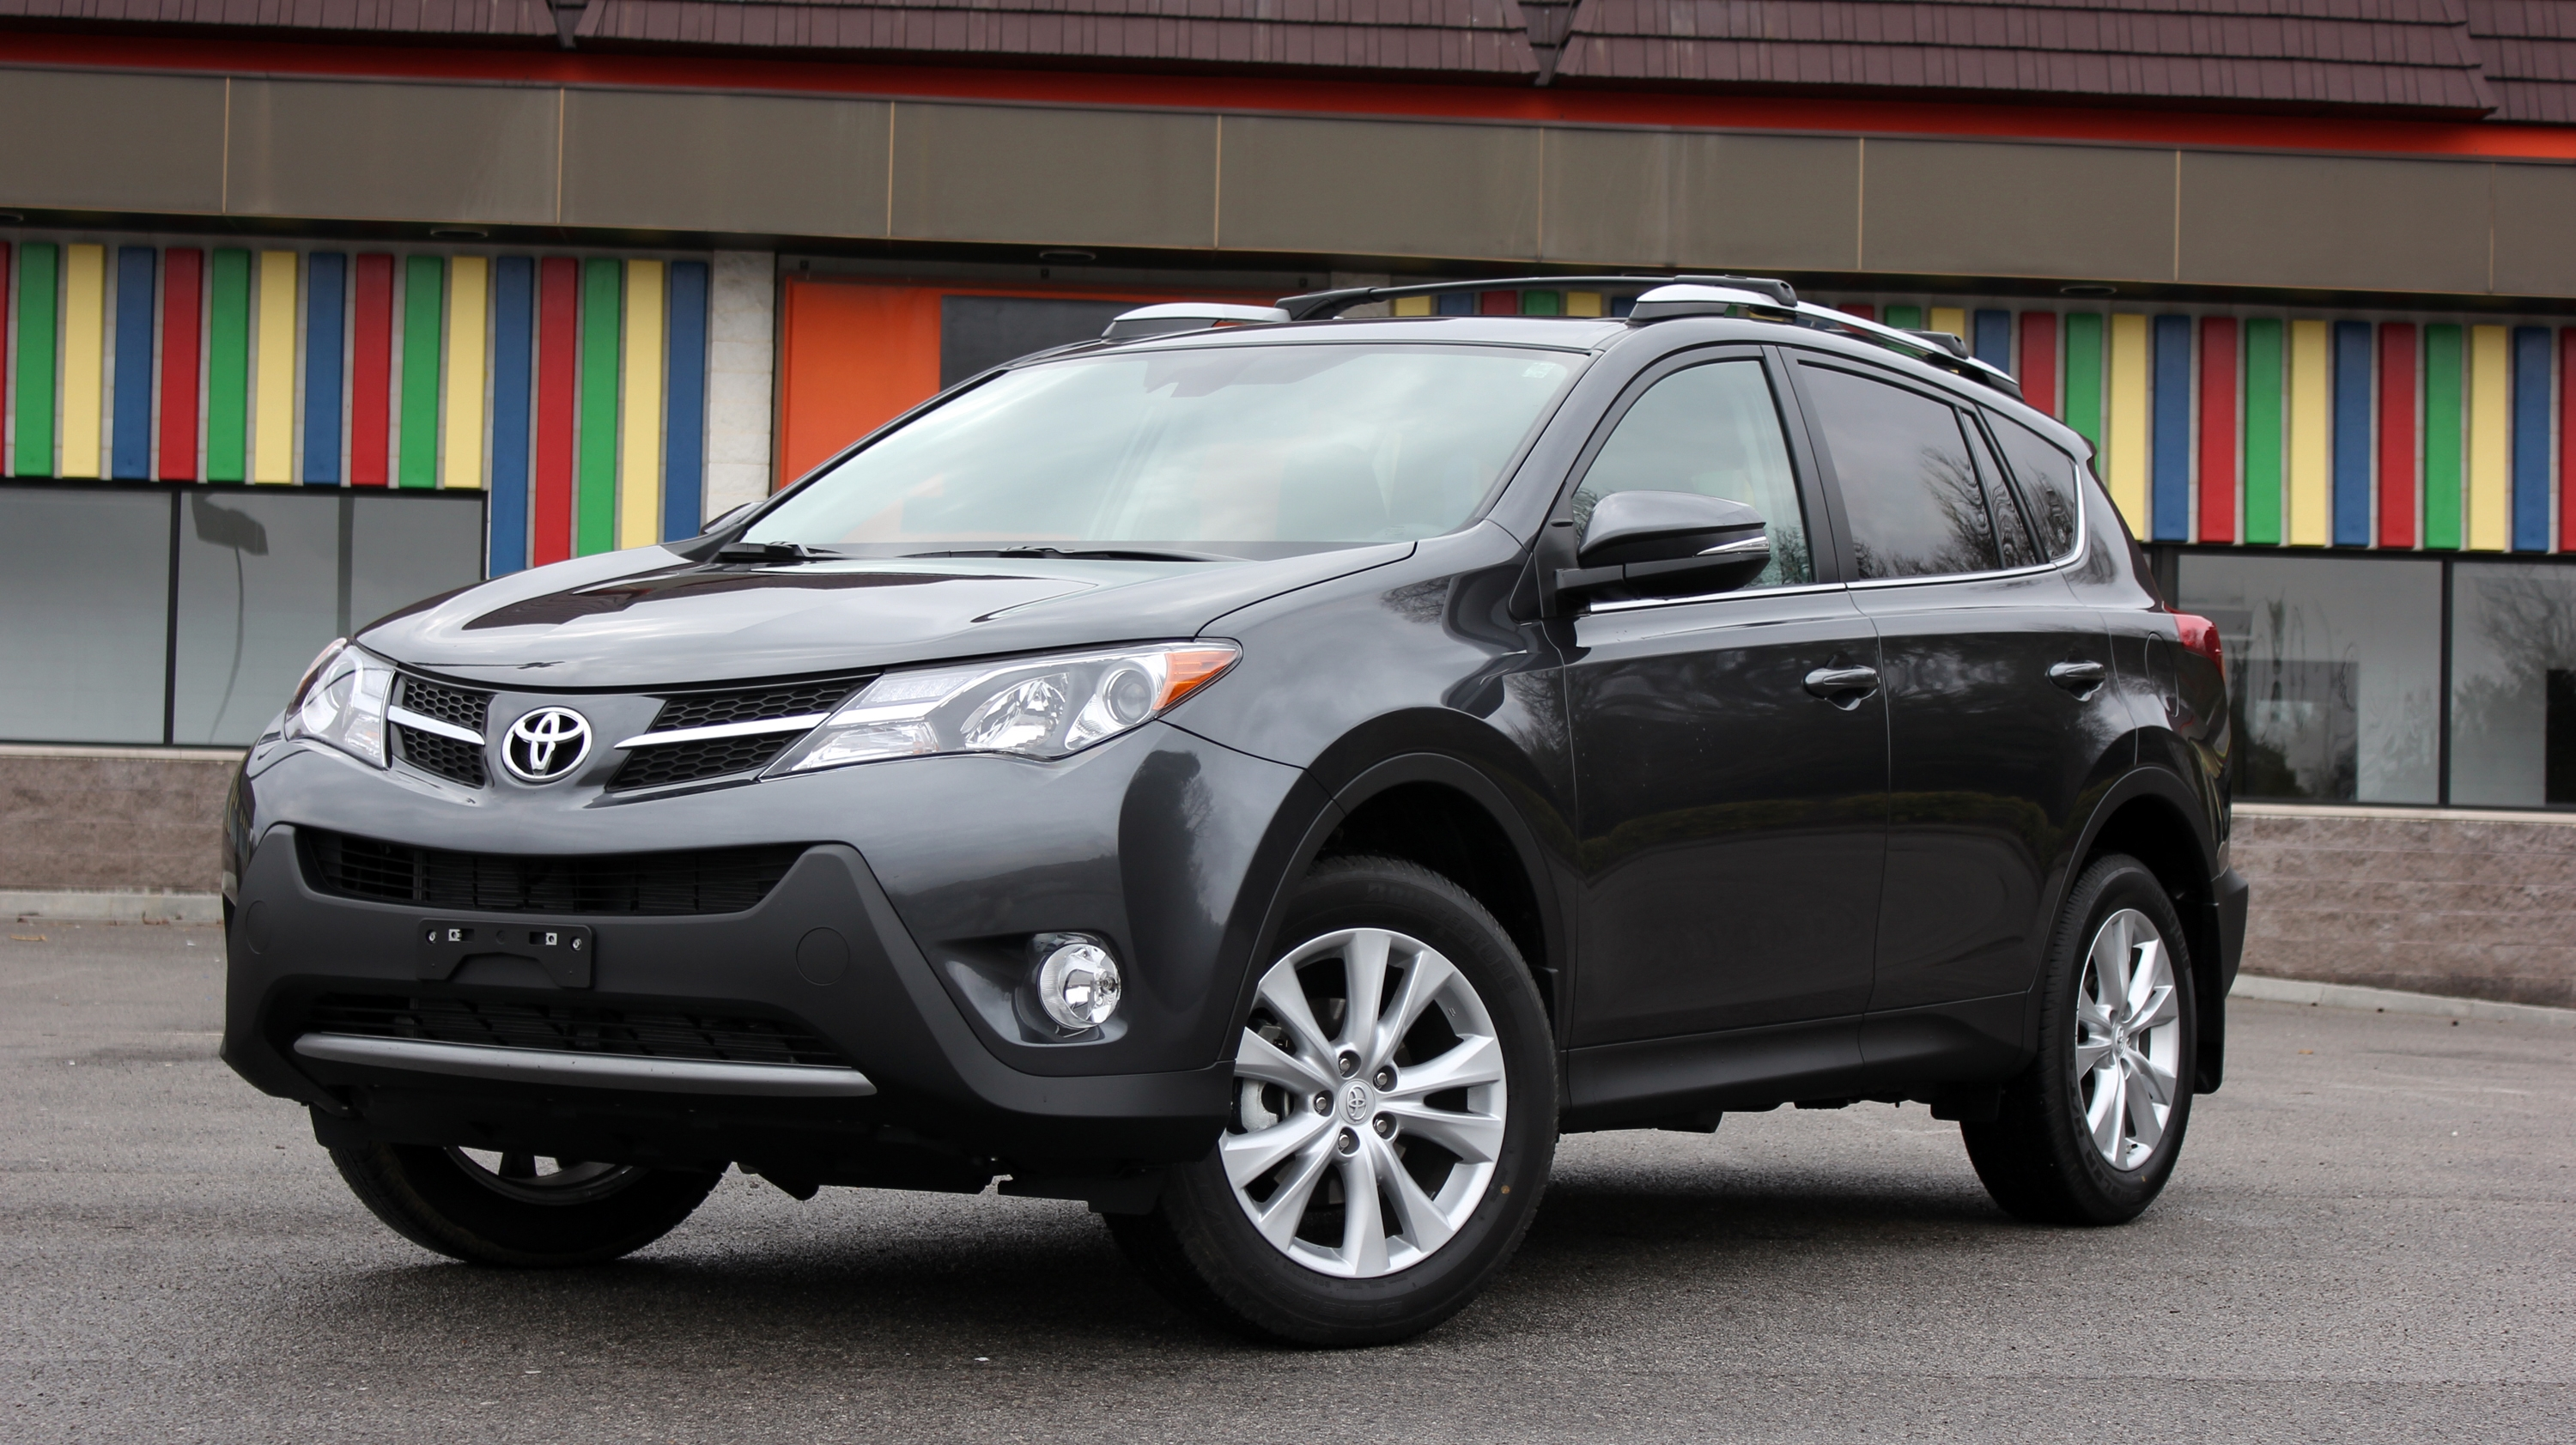 2015 toyota rav4 driven picture 617491 car review top speed. Black Bedroom Furniture Sets. Home Design Ideas